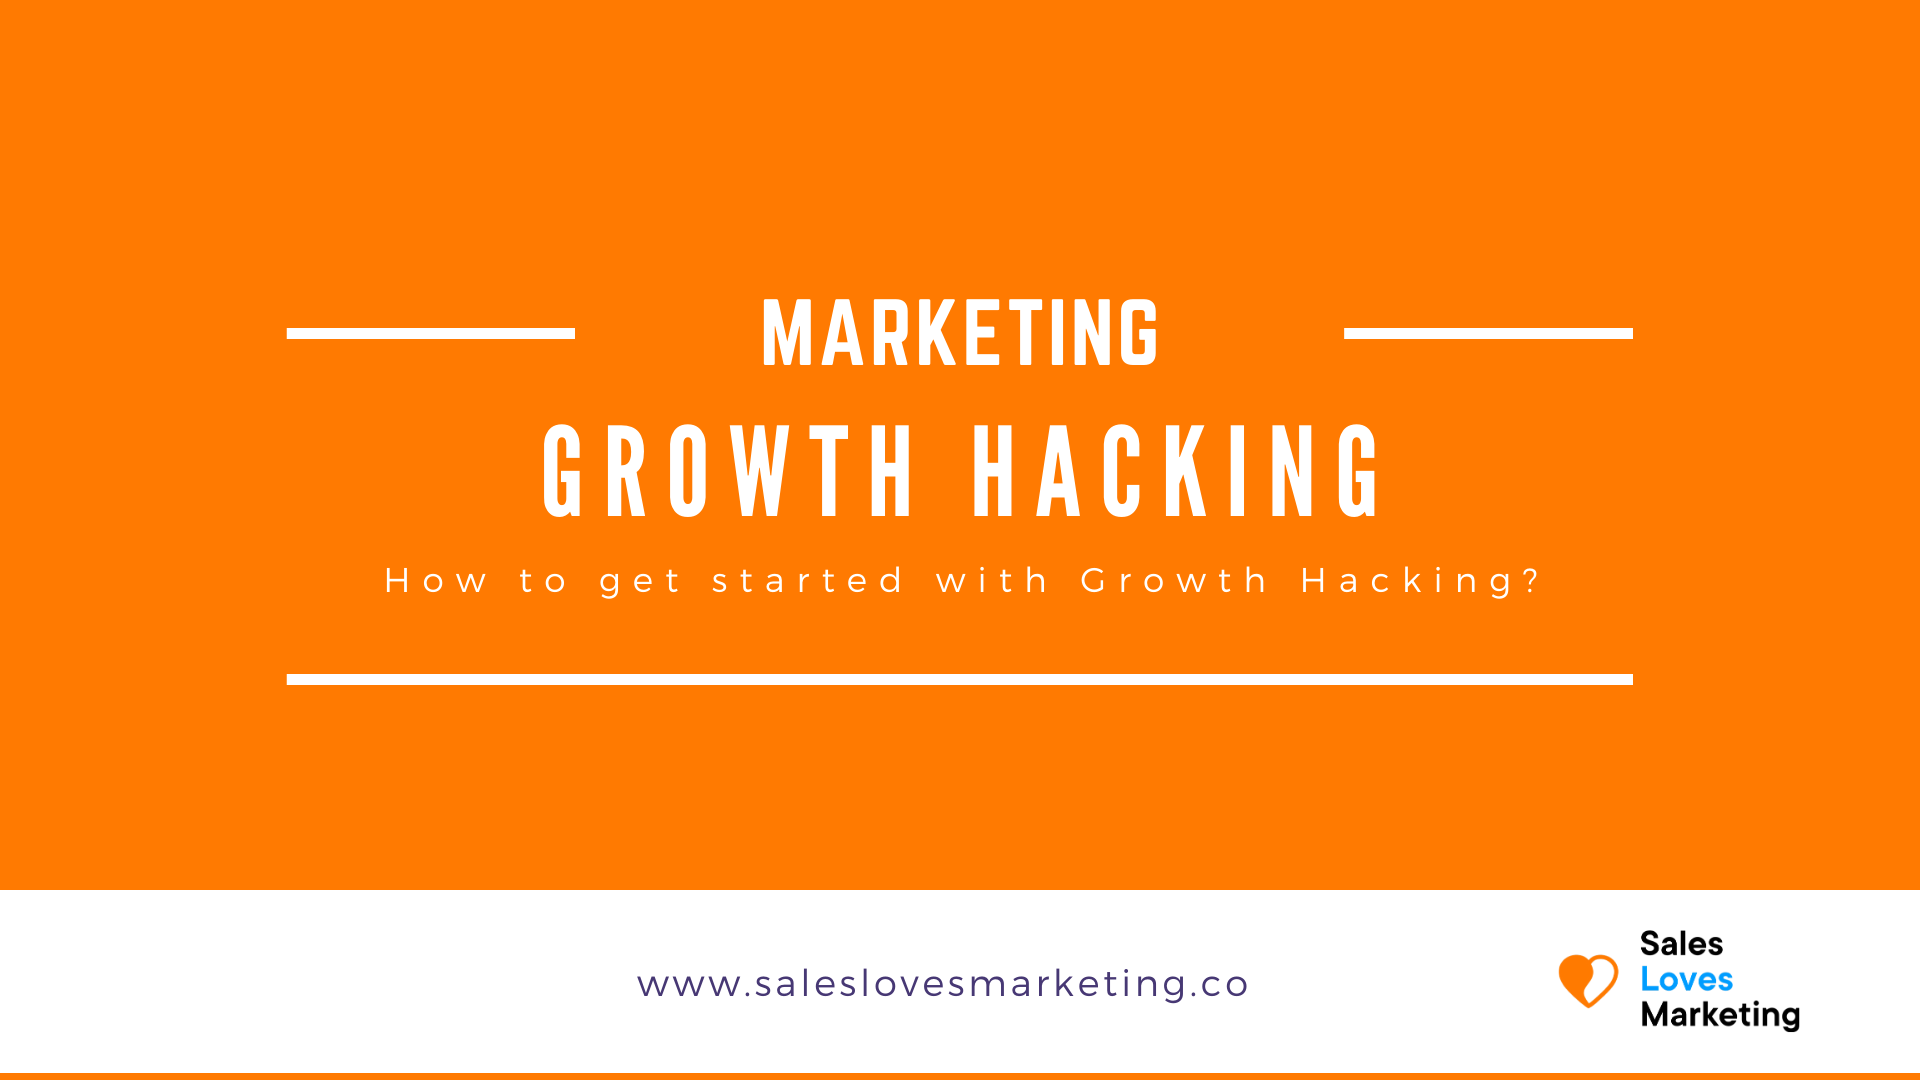 Learn how to get started with Growth Hacking